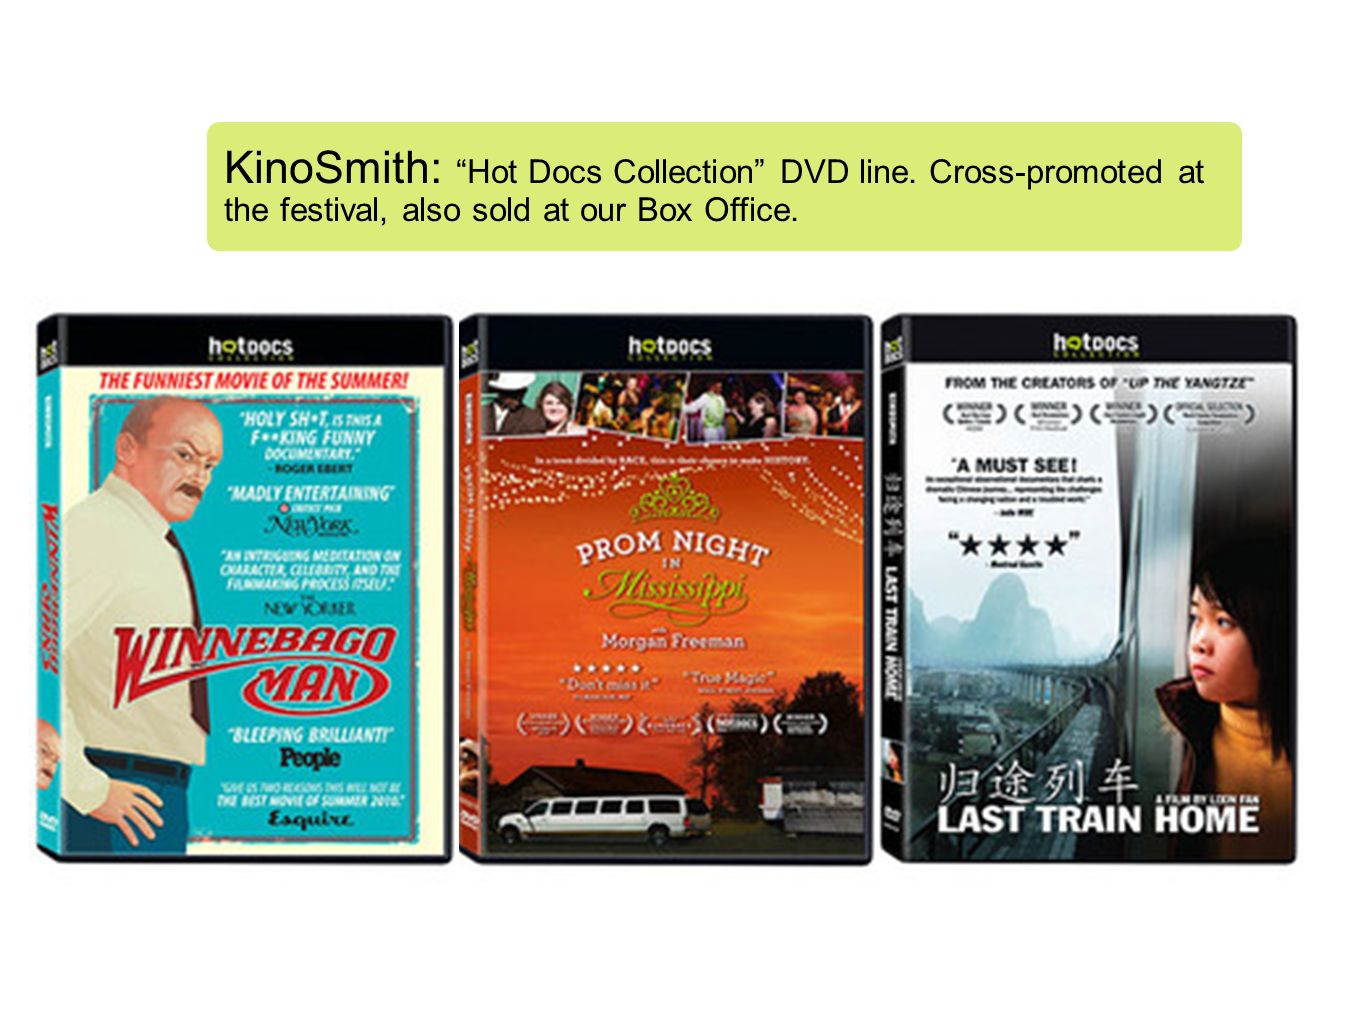 KinoSmith: Hot Docs Collection DVD line. Cross-promoted at the festival, also sold at our Box Office.